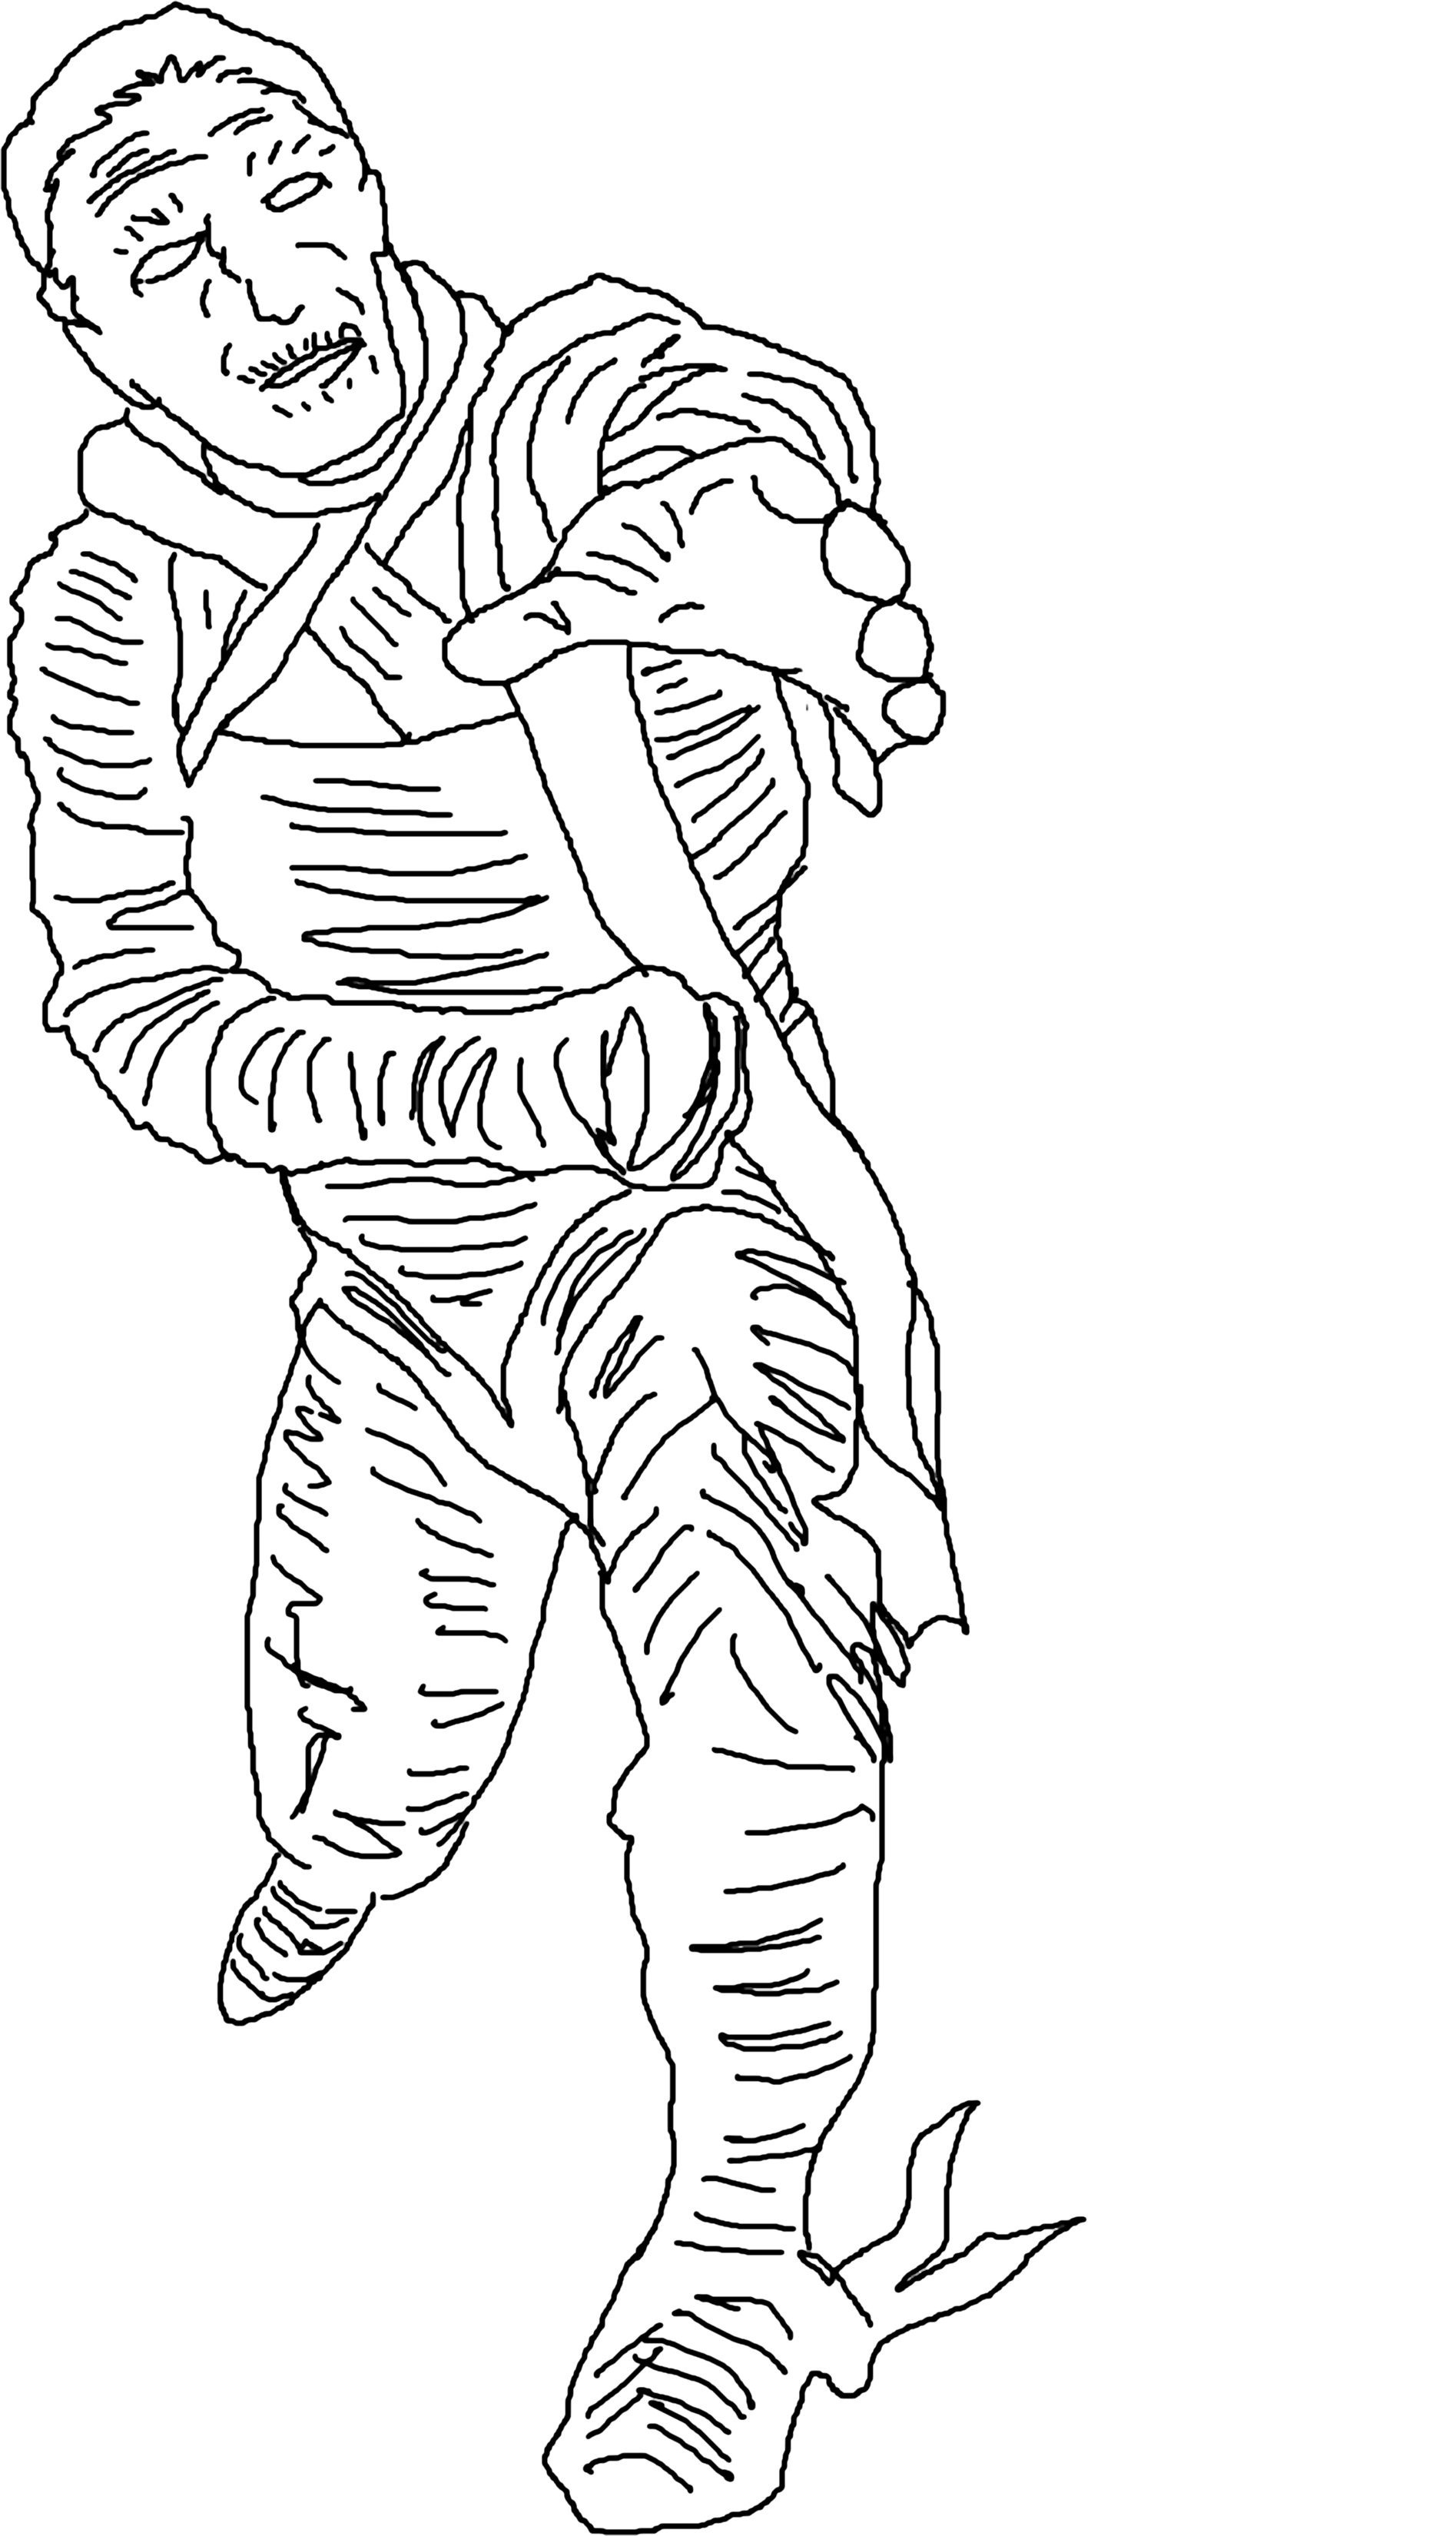 mummies-pictures-for-kids-coloring